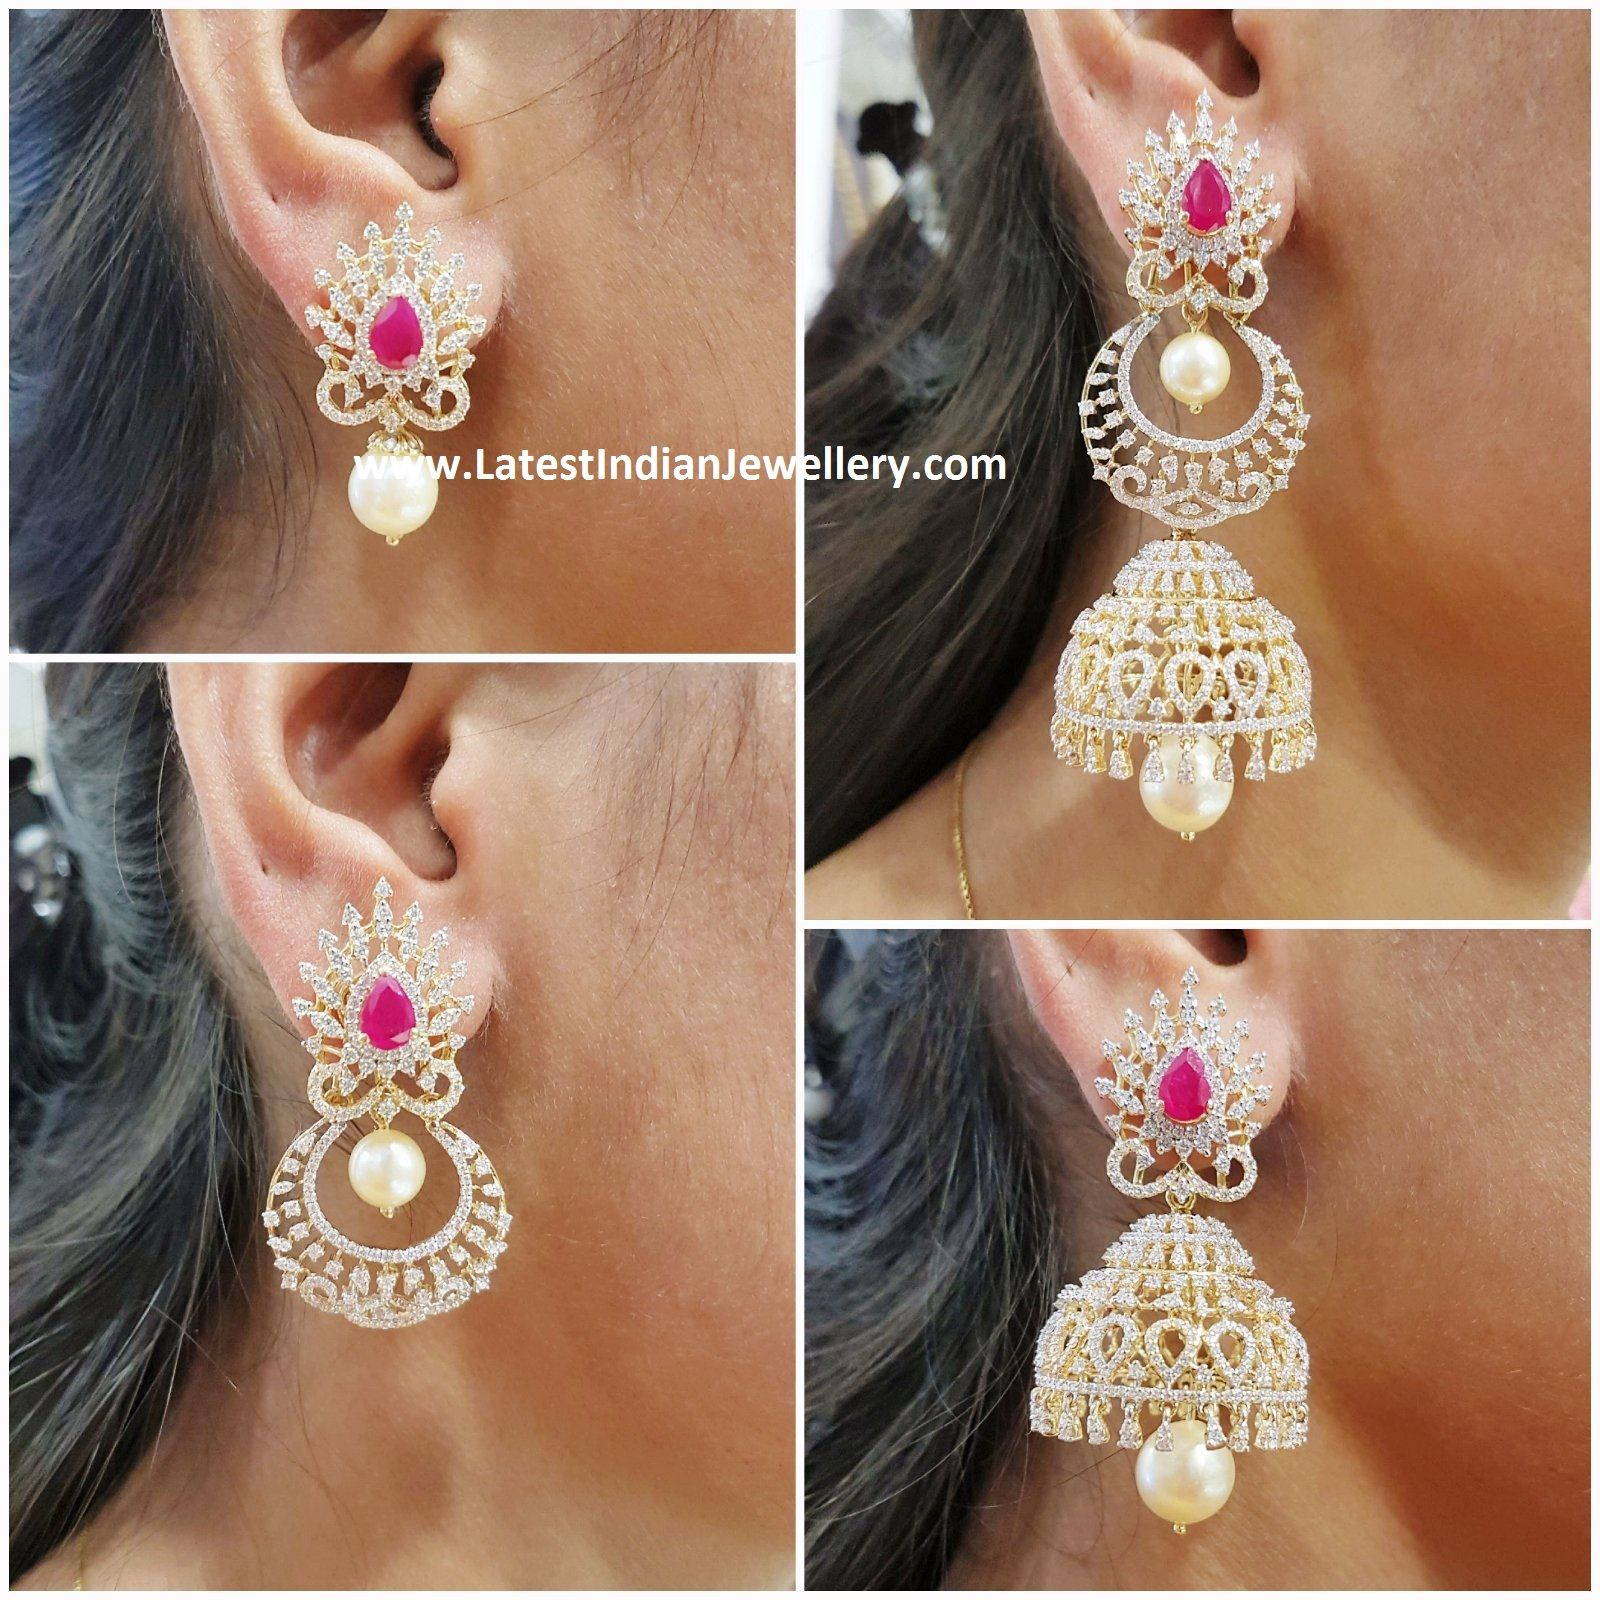 4 In 1 Detachable Diamond Jhumki Gold Earrings Designs